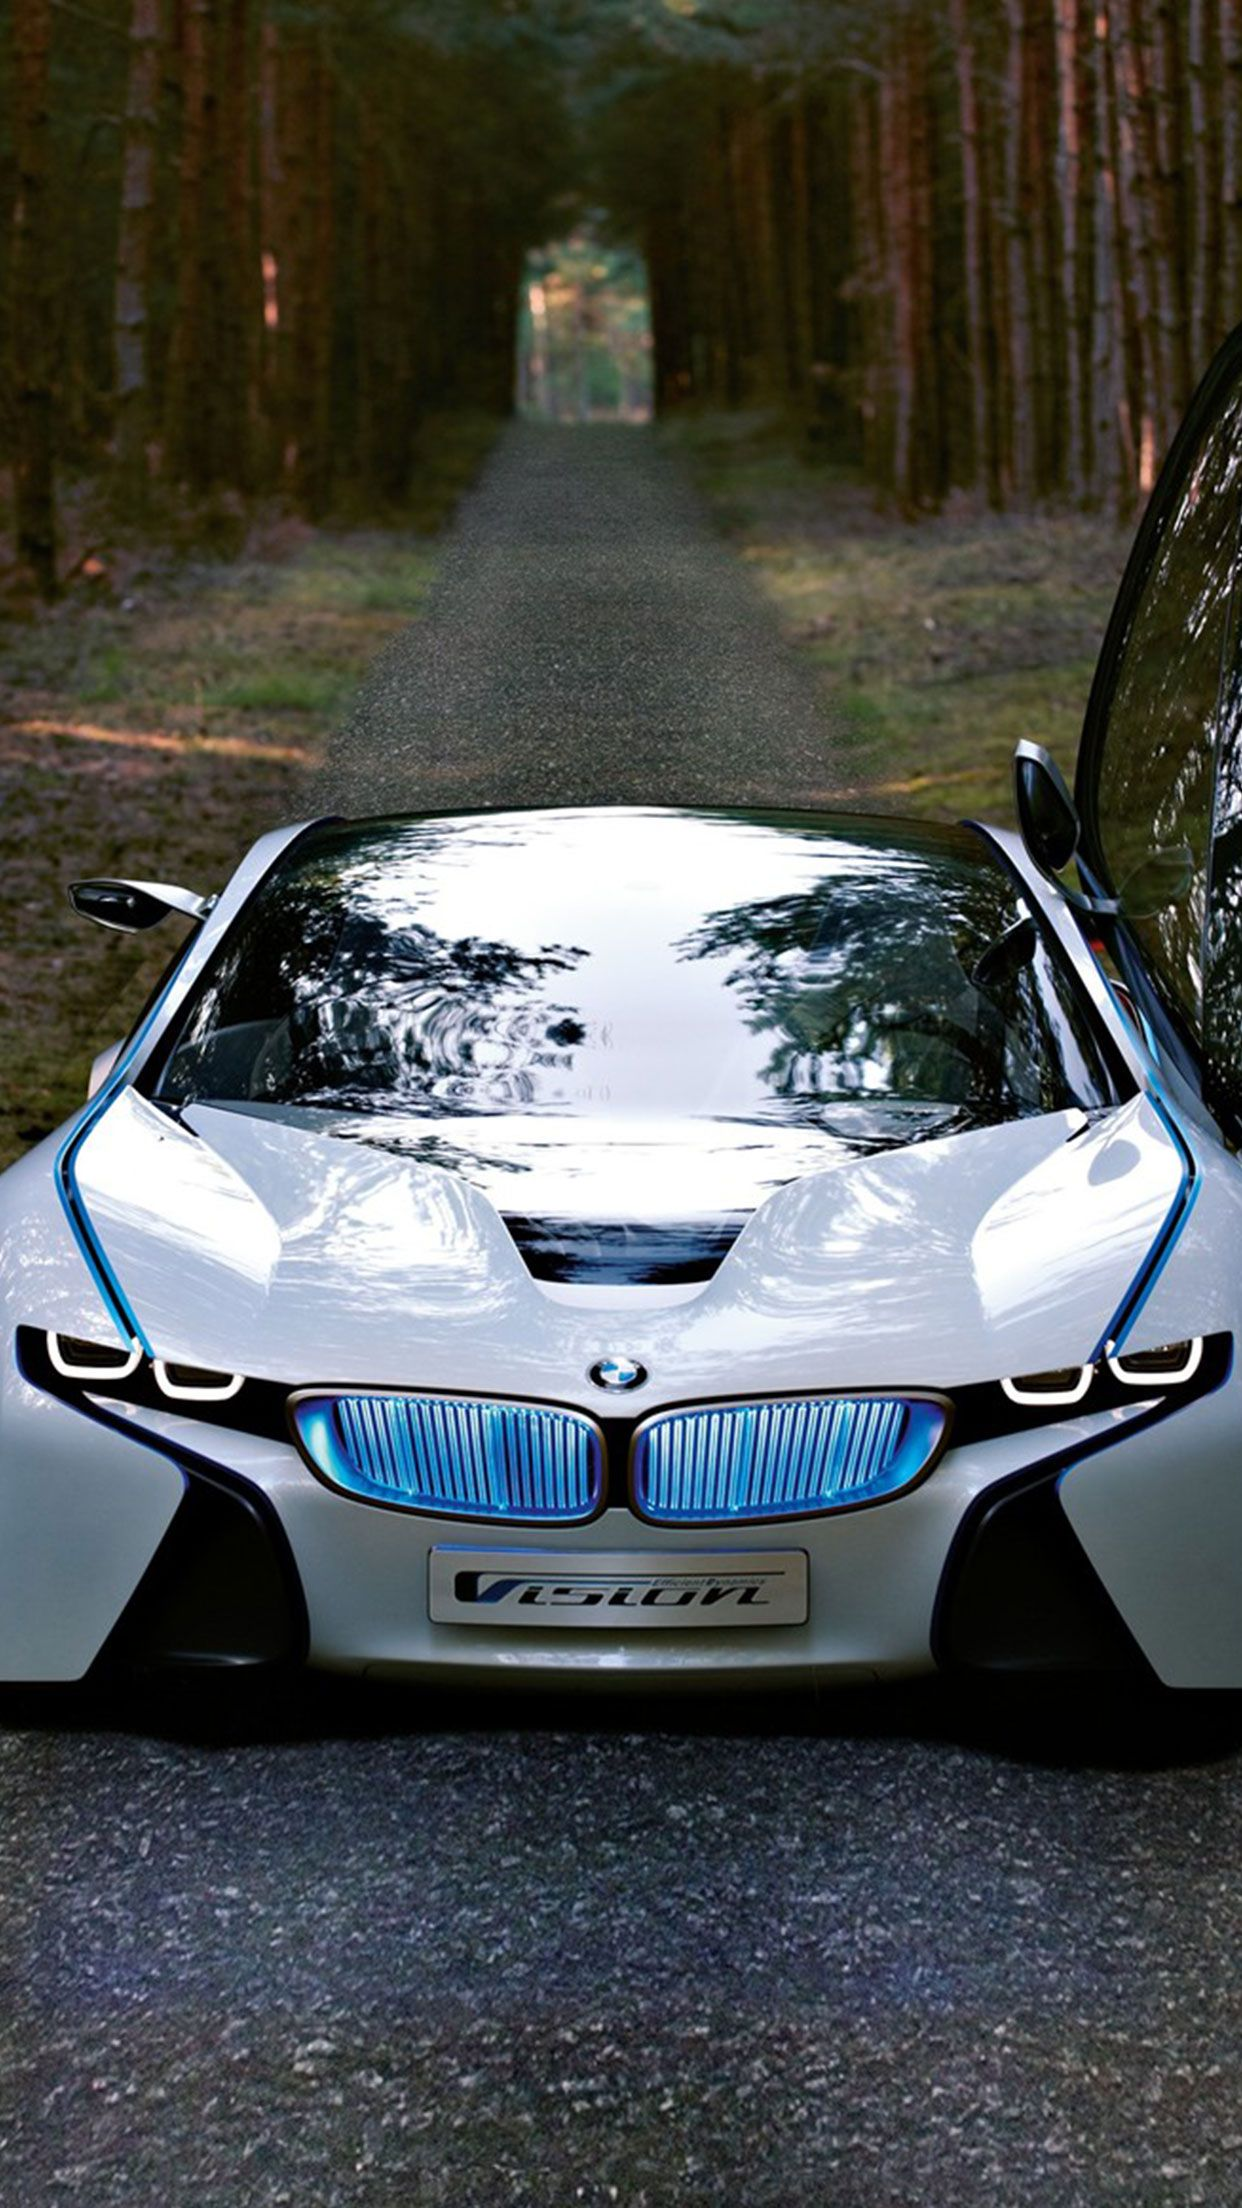 BMW Car Wallpaper #Iphone #android #bmw #car #wallpaper More On Wallzapp